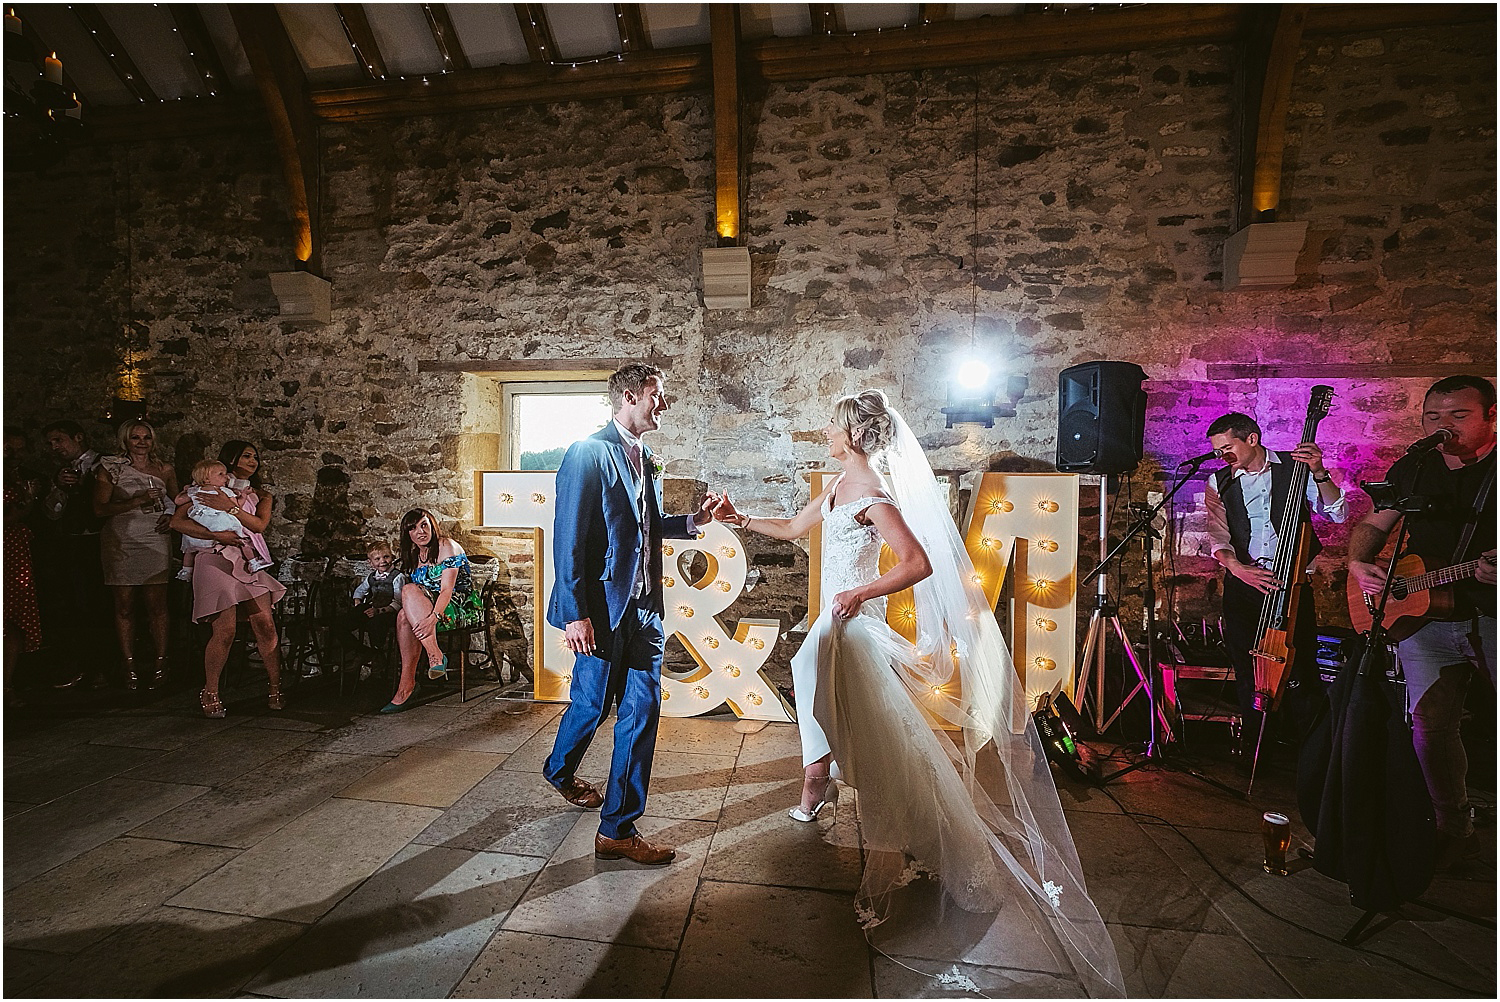 Healey Barn wedding by www.2tonephotography.co.uk 115.jpg